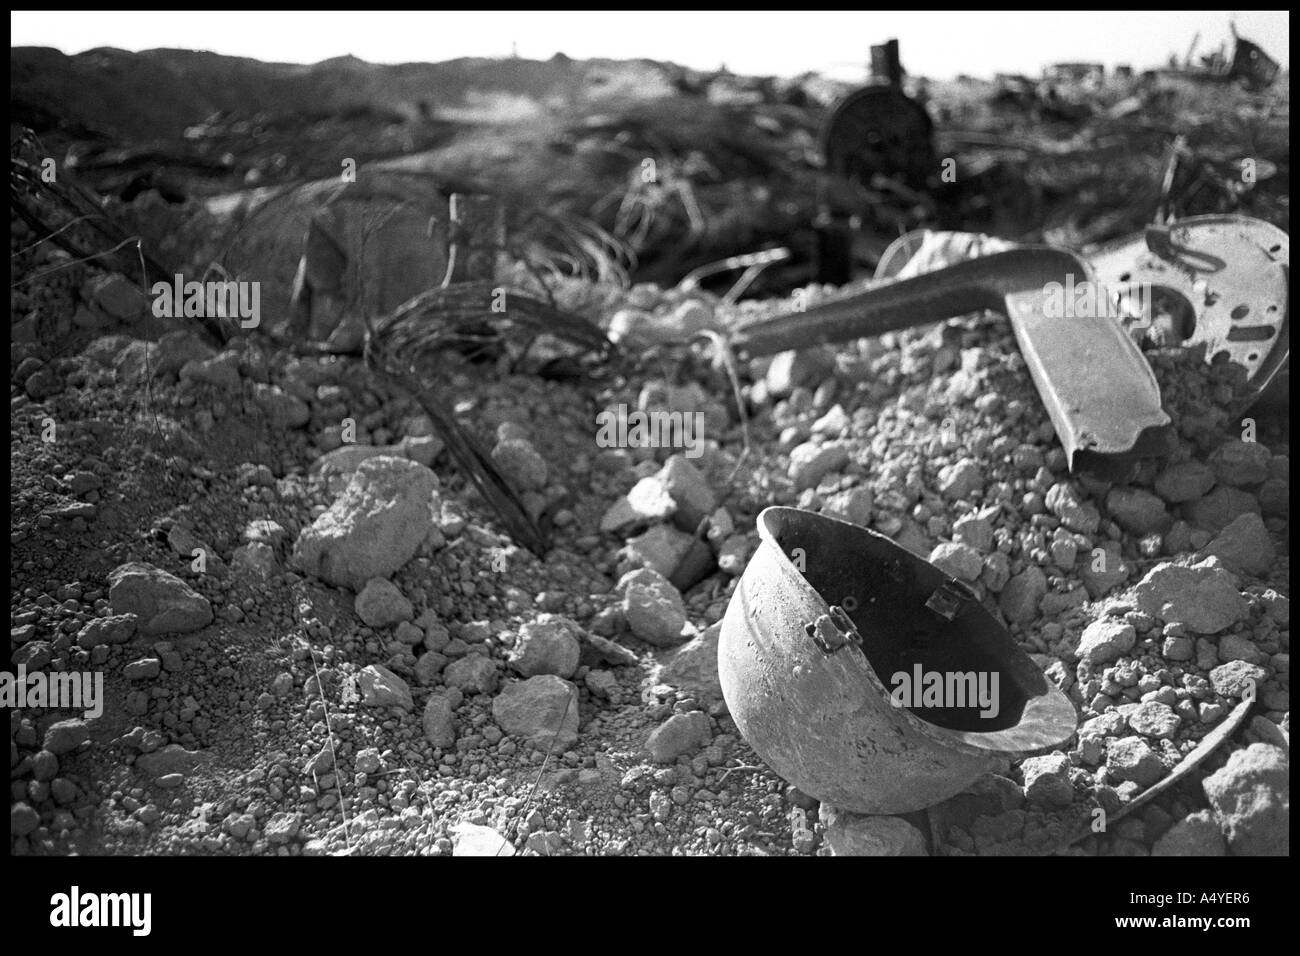 Helmet in scrap metal of diffrent battles, Kirkuk - Stock Image